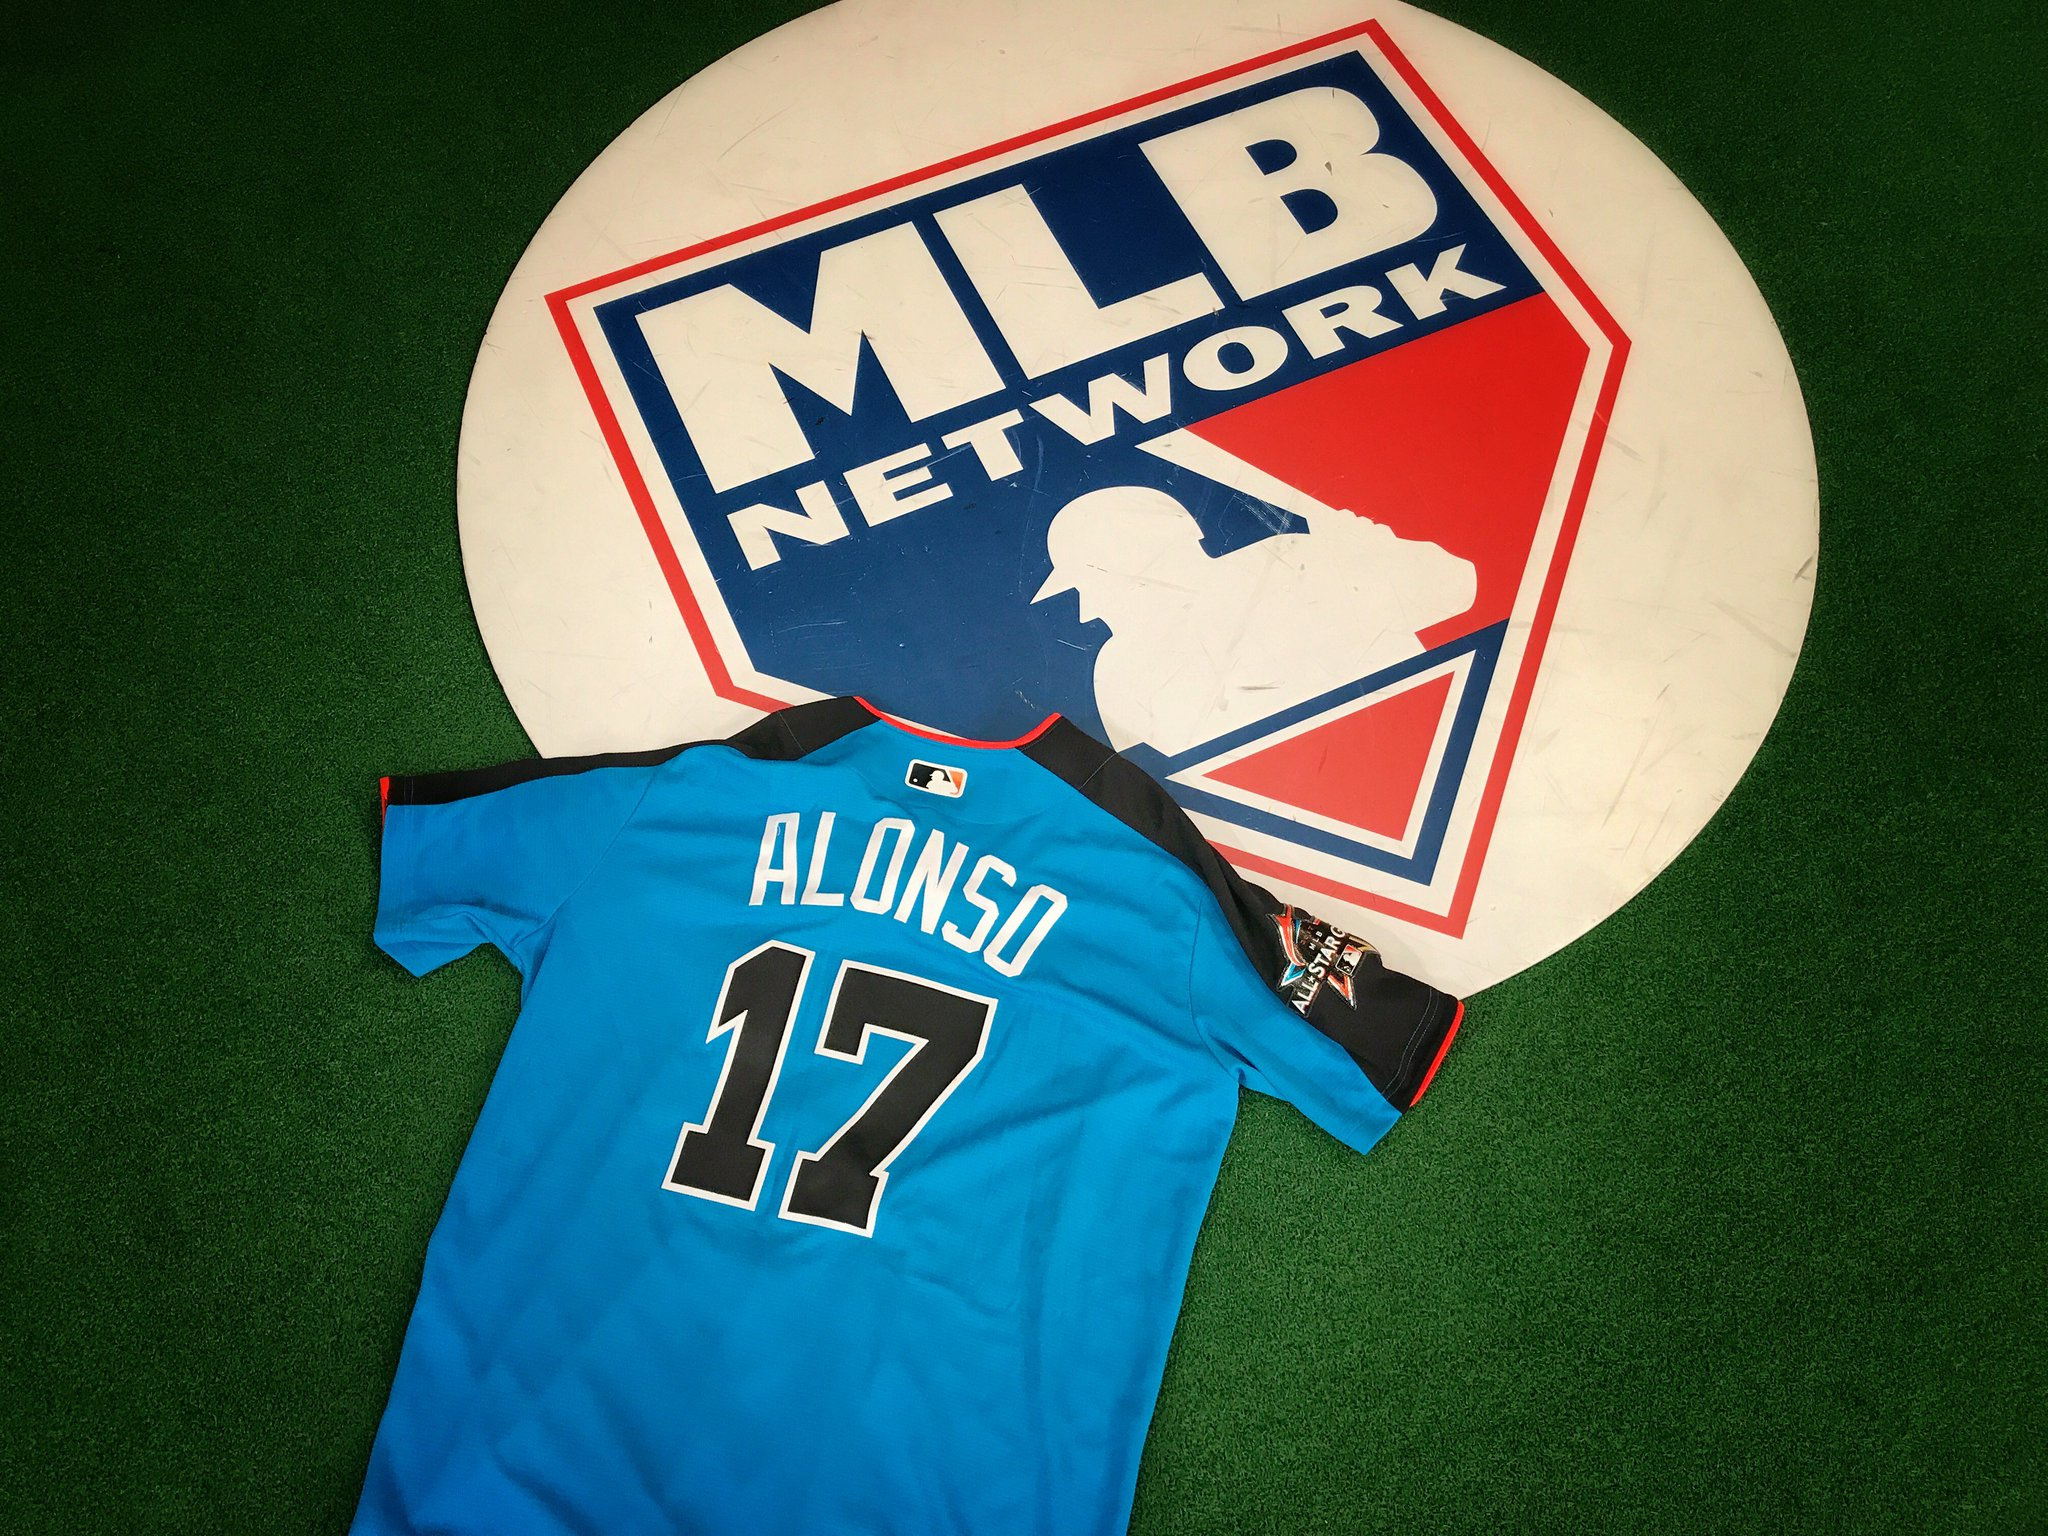 .@YonderalonsoU makes his @Mariners debut tonight! RETWEET for a chance at his #ASG jersey! https://t.co/R75esUpkW1